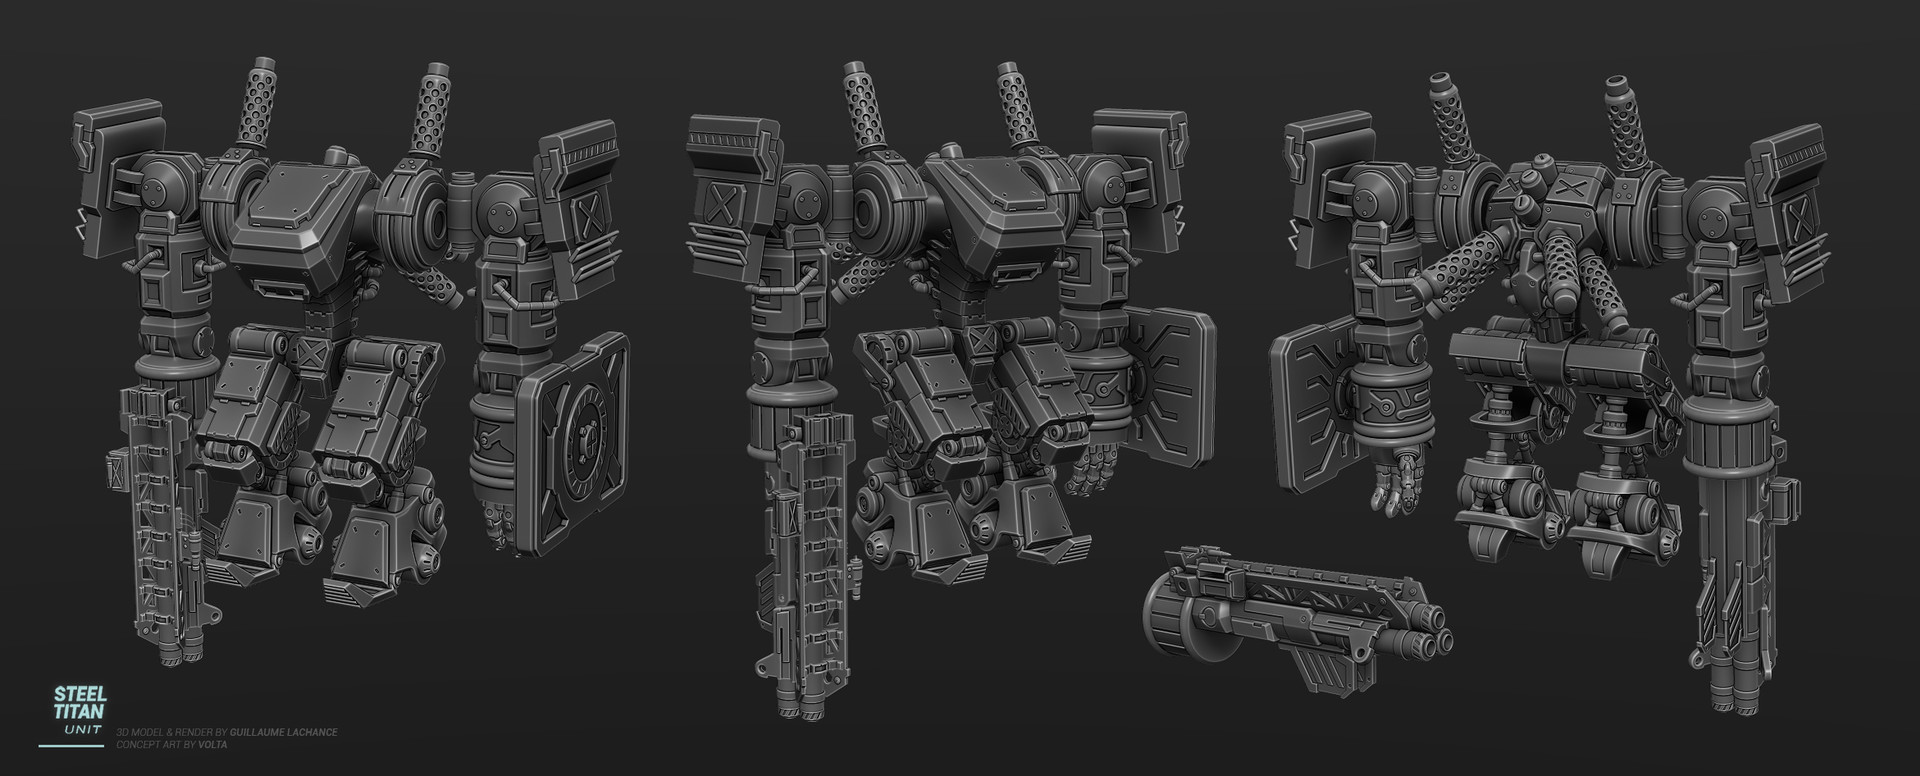 Guillaume lachance gearbolt steeltitanzbrush final 01